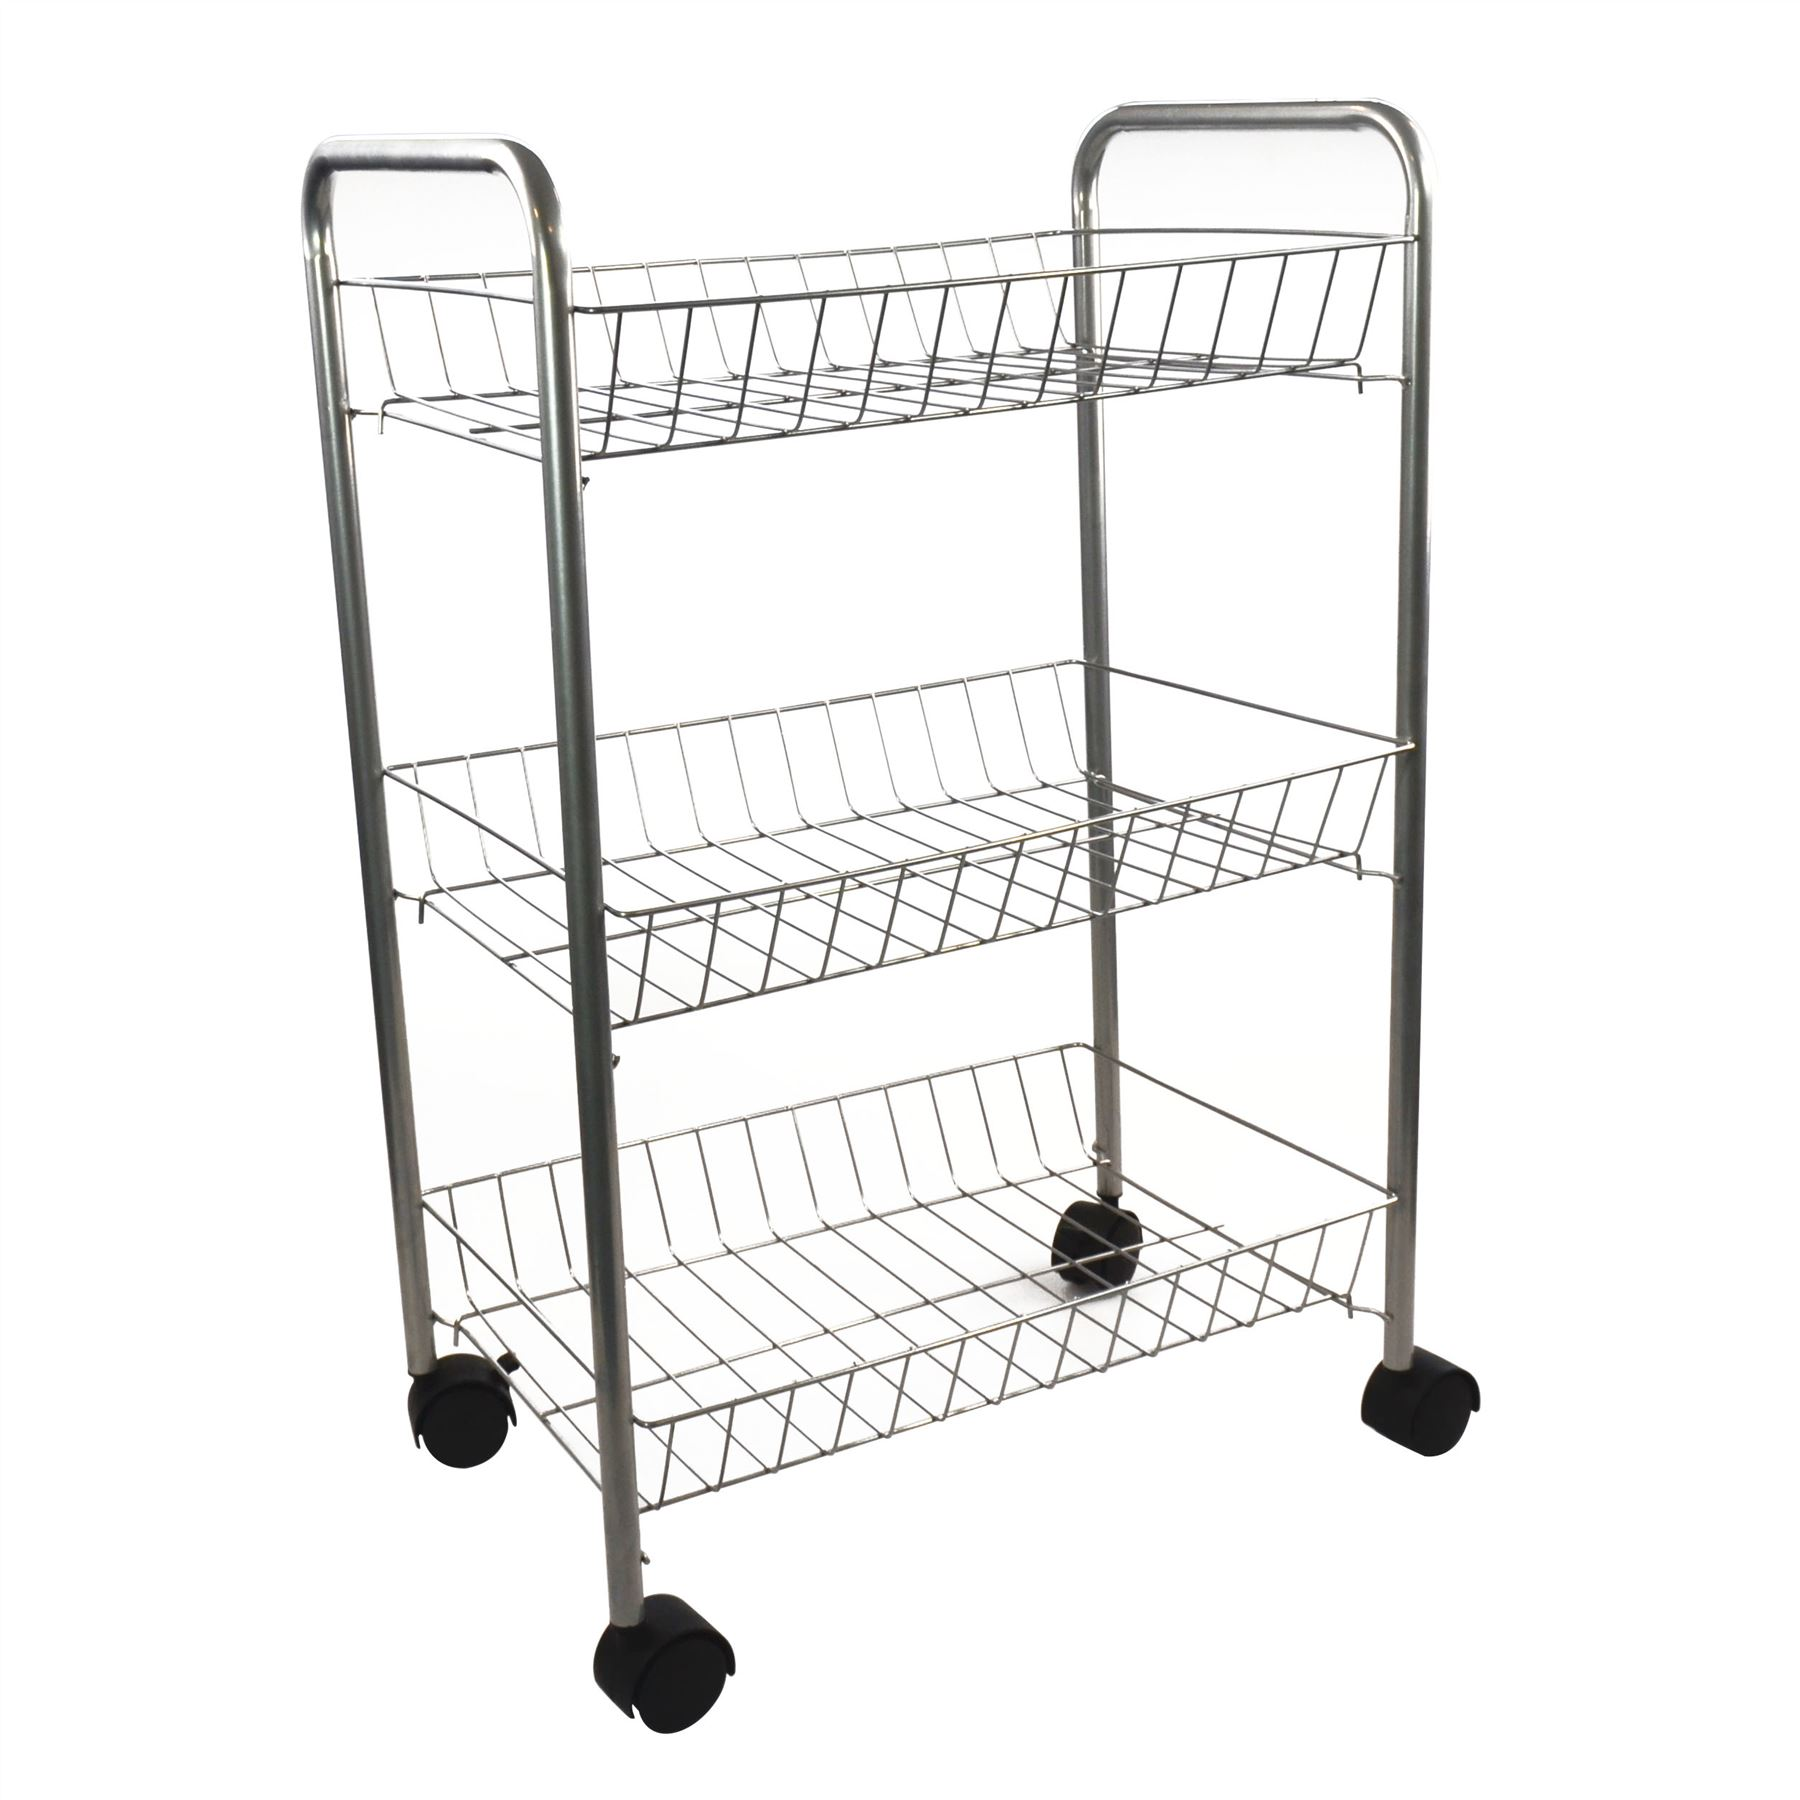 3 Amp 4 Tier Metal Kitchen Storage Trolley Vegetable Fruit